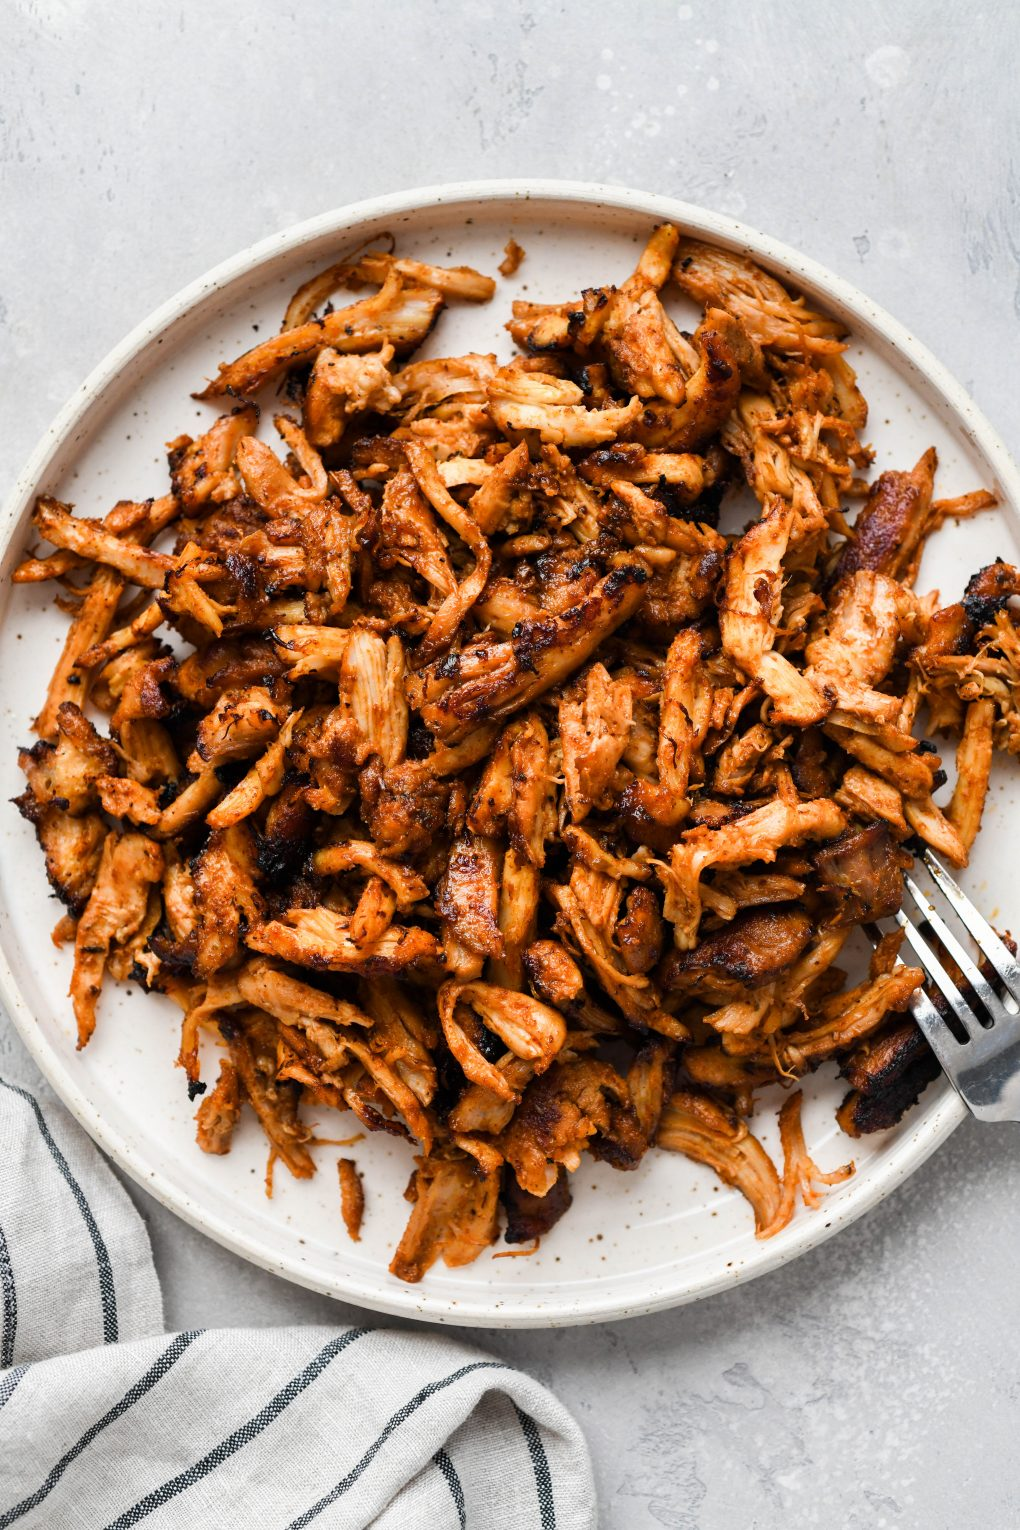 A close up shot of shredded chicken on a light colored speckled plate, next to a striped dish towel, on a light colored surface.